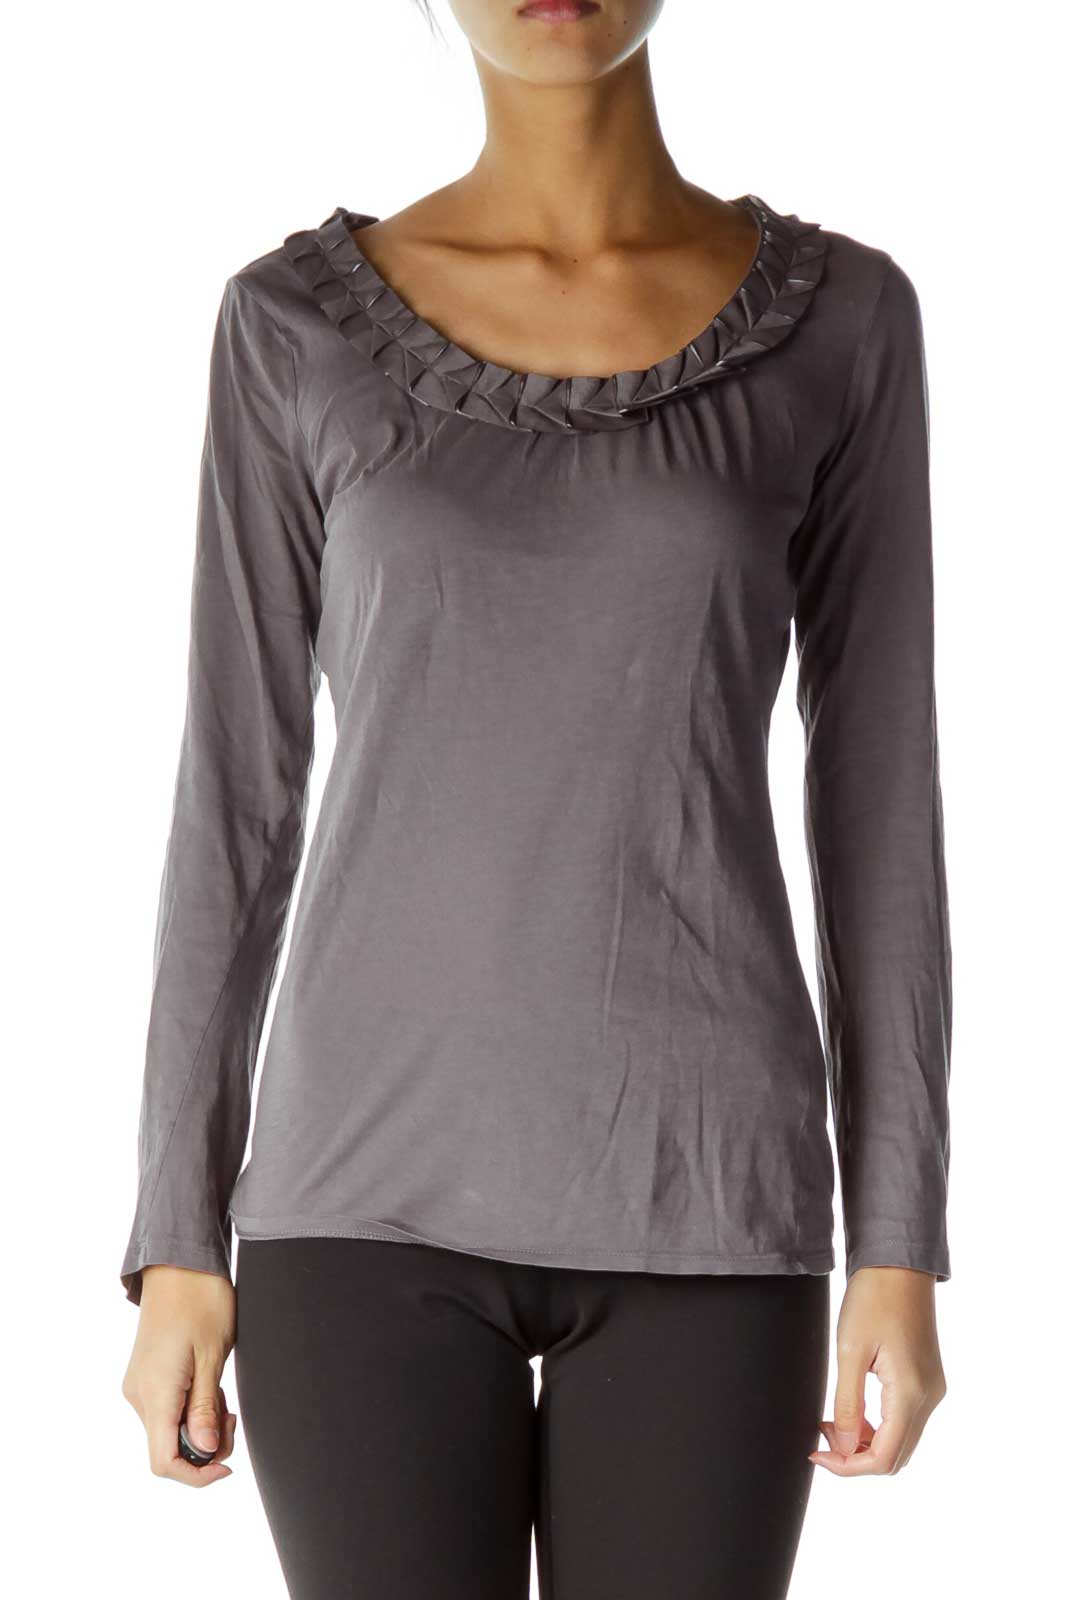 Gray Detailed Folded Neckline T-Shirt Front